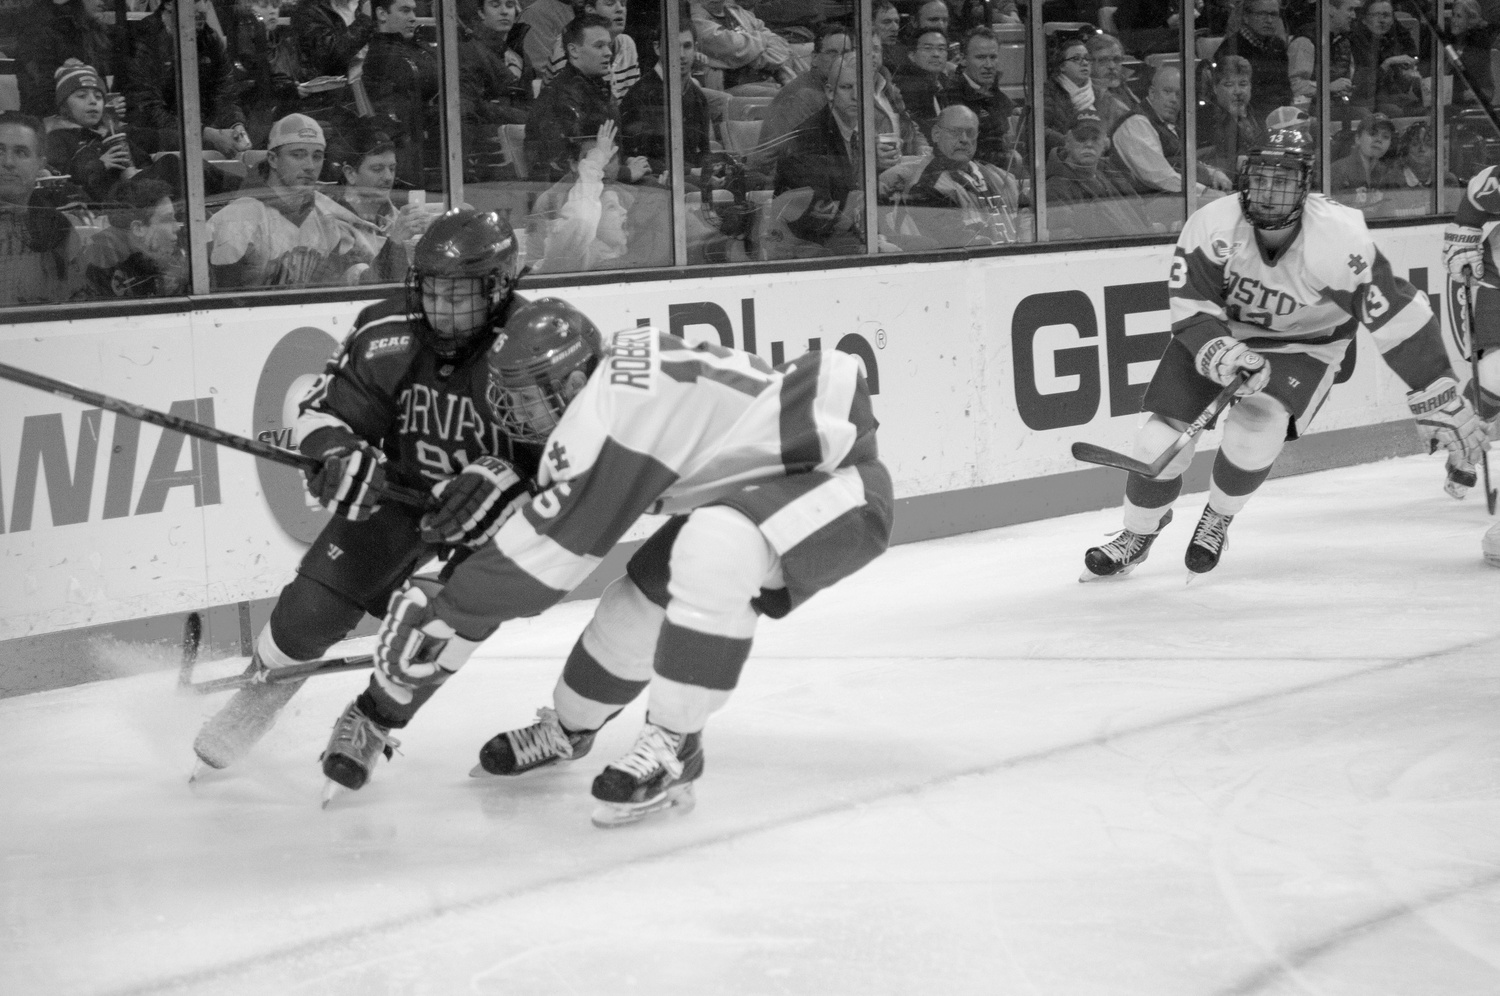 Freshman forward Jake Horton (above-left) is one of many Crimson skaters who played in the junior leagues before arriving in Cambridge. The practice allowed them to gain experience competing at a high level prior to collegiate play.